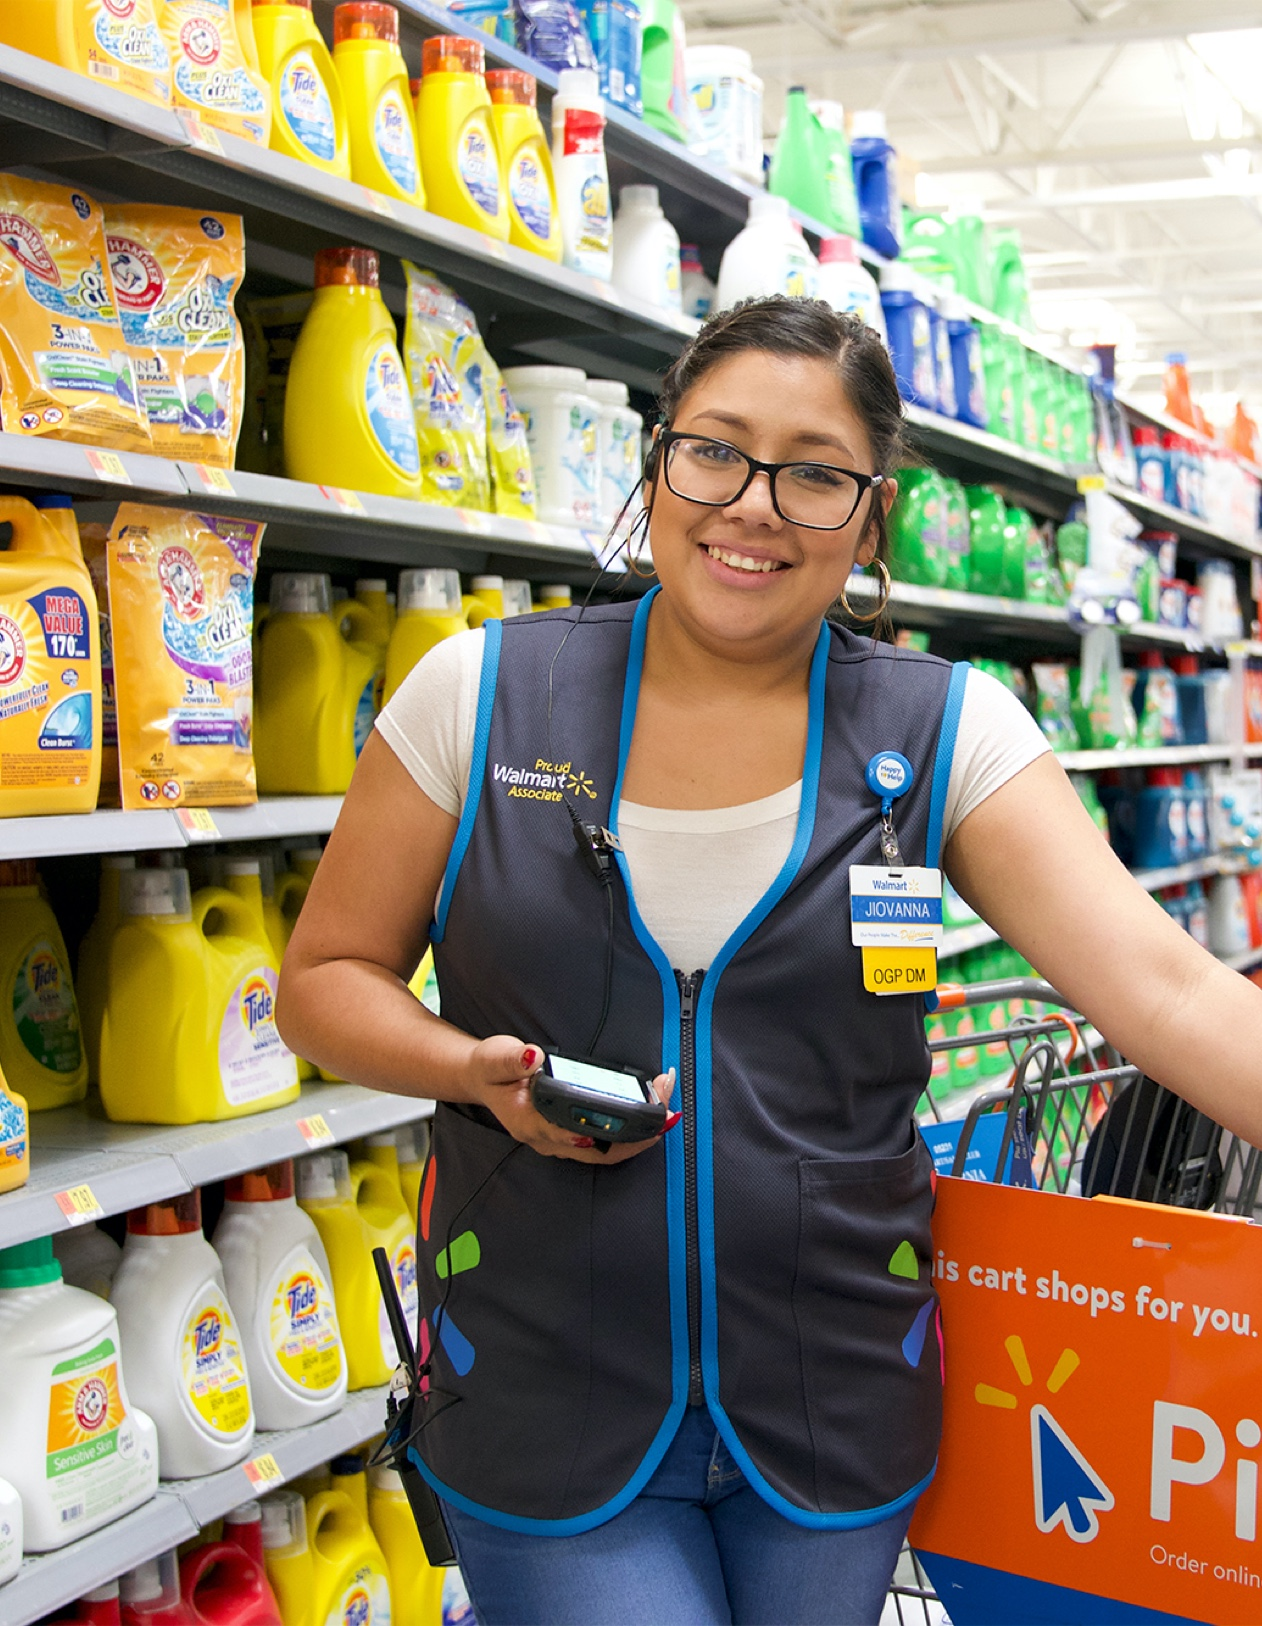 If you played sports when you were young, then you grew up and entered the workforce already knowing how incredible it feels to be part of a team. Walmart Pay Card Exclusively For Walmart Associates Exceed Card